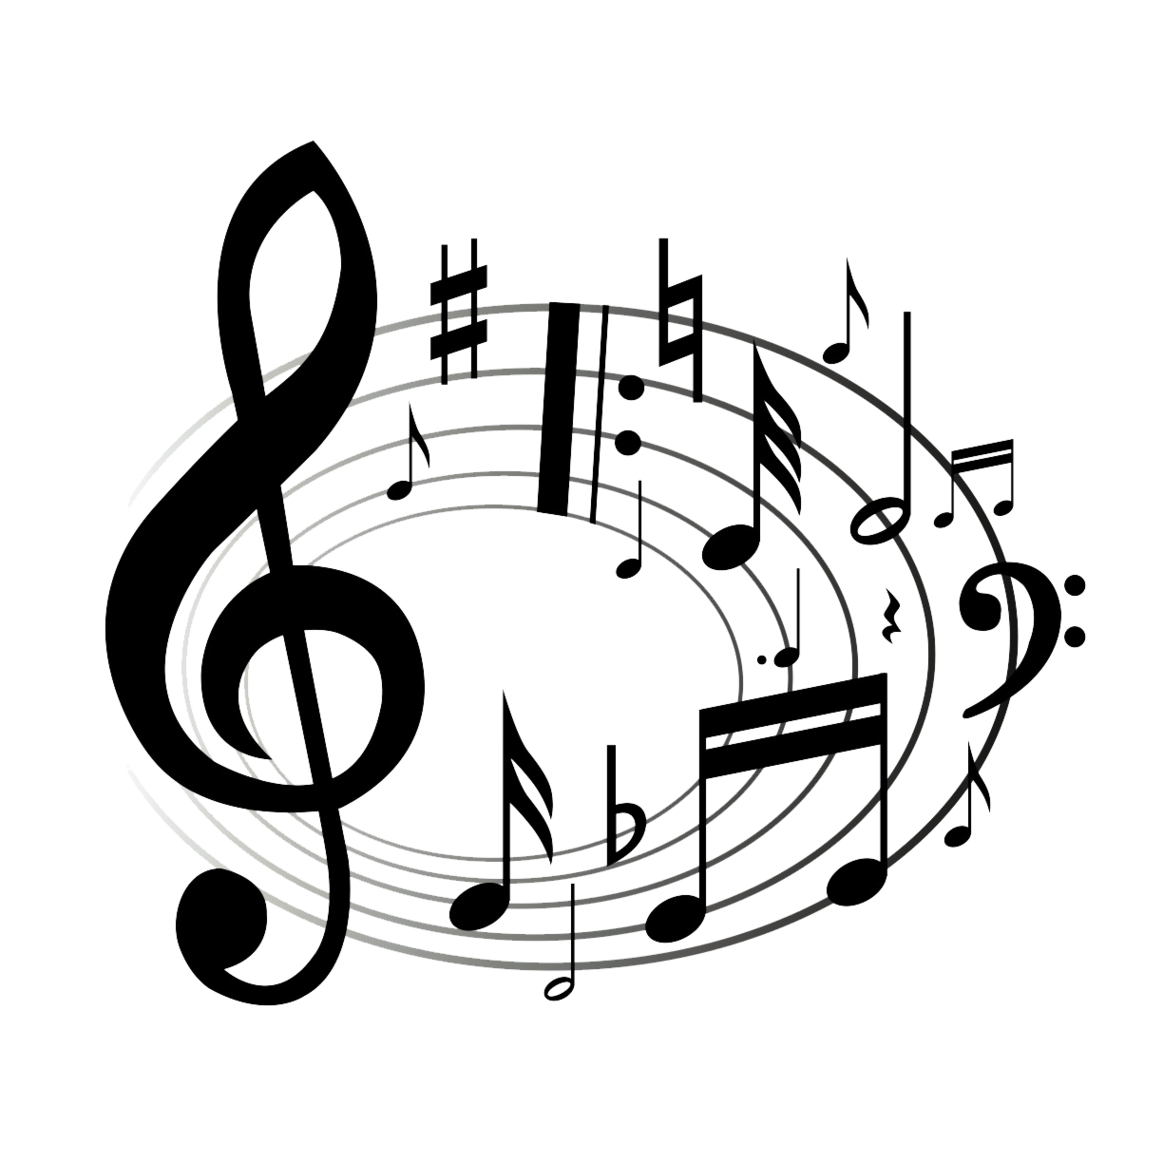 Free Jazz Instruments Cliparts, Download Free Clip Art, Free.